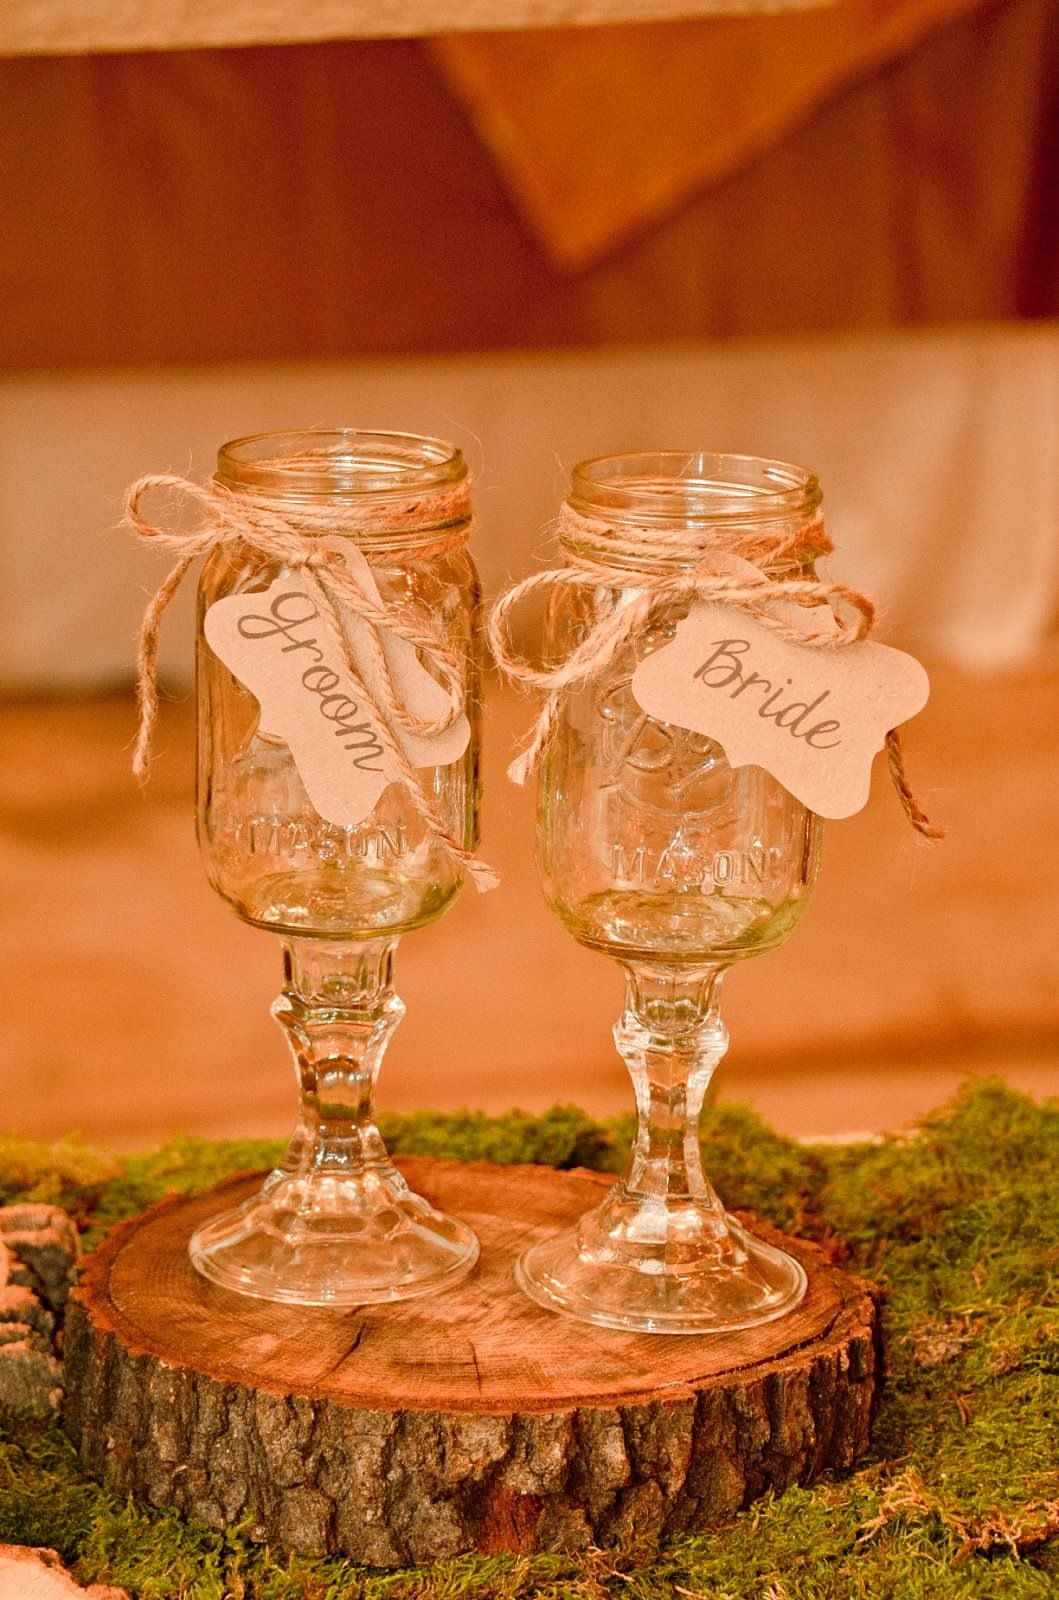 Cute Glassware Rustic Wedding Toasting Glasses Rustic Bride Pinterest